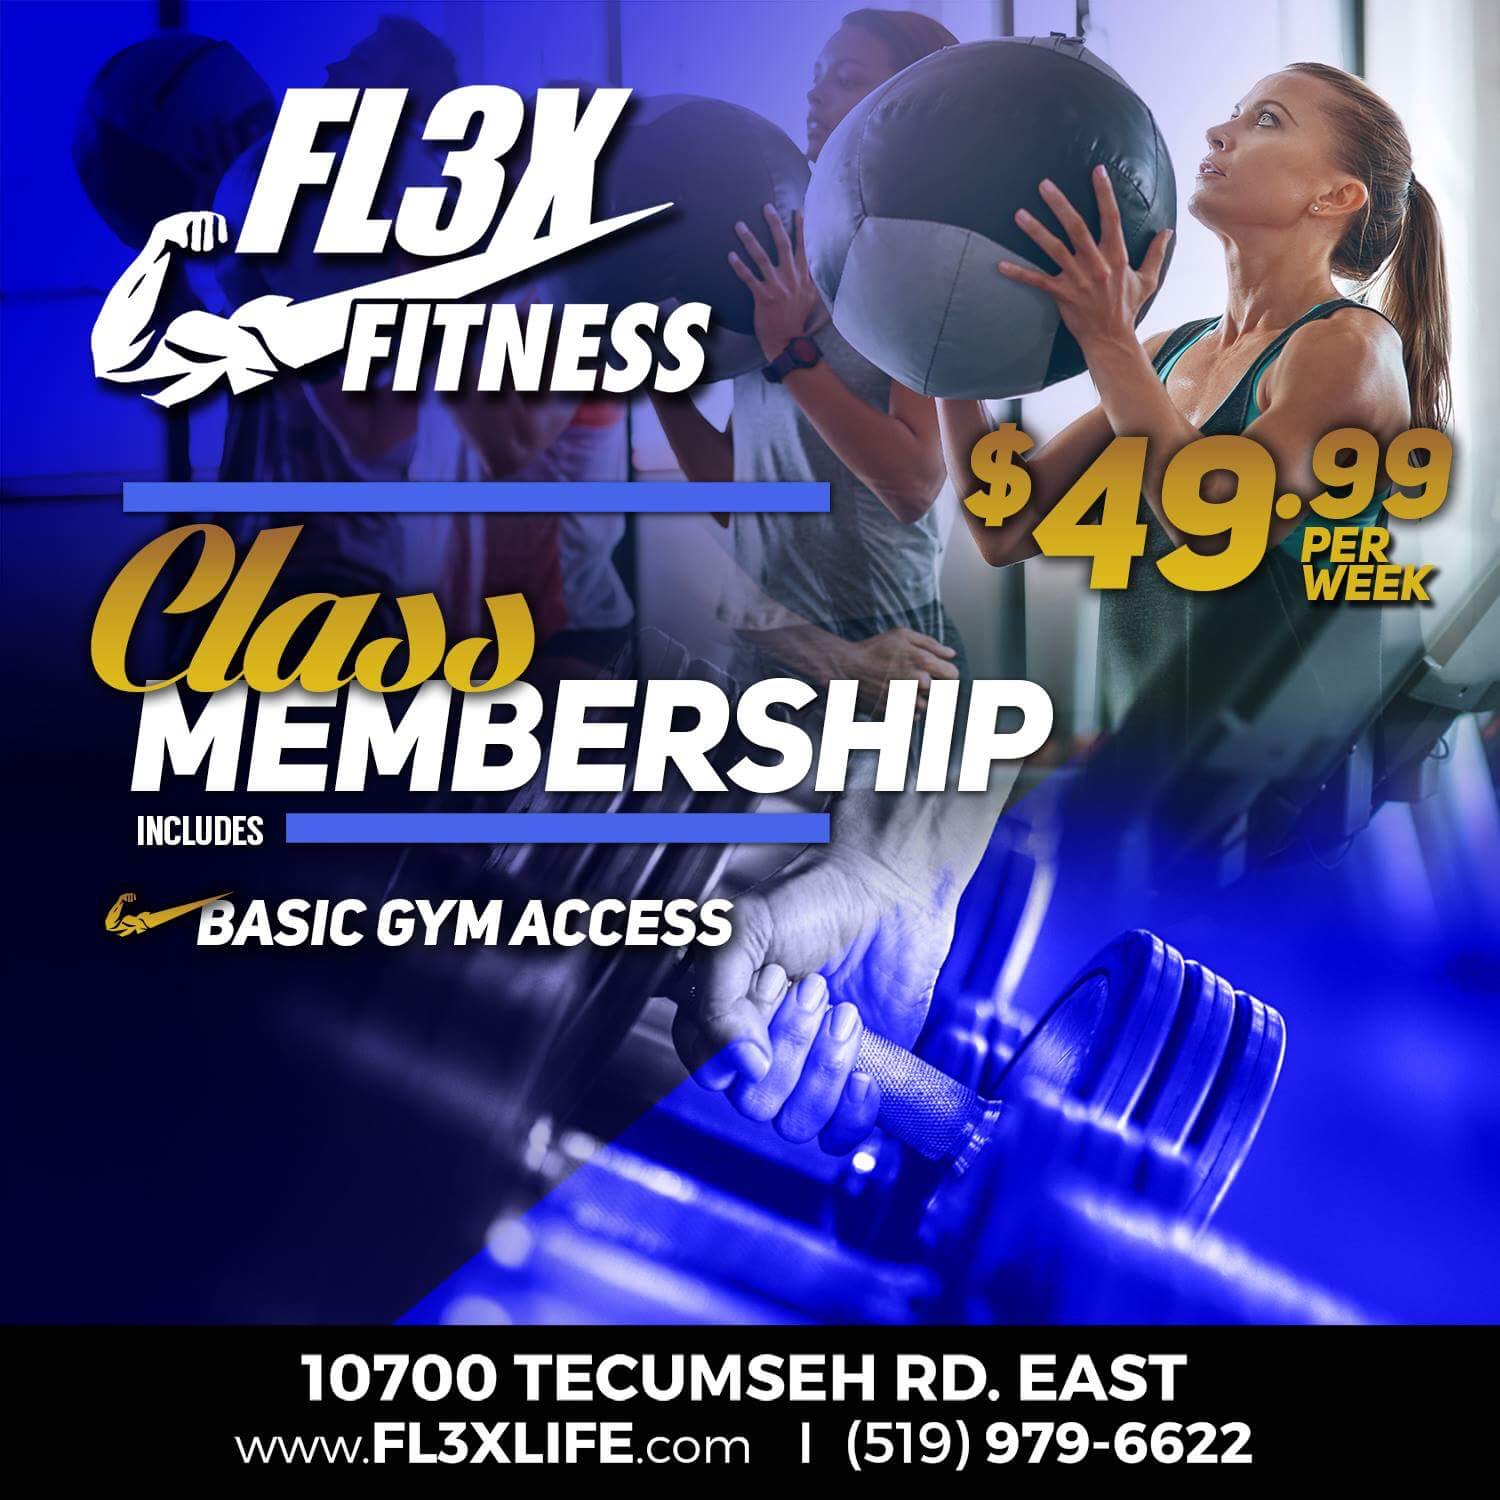 Class Membership - $49.99 - includes basic gym access